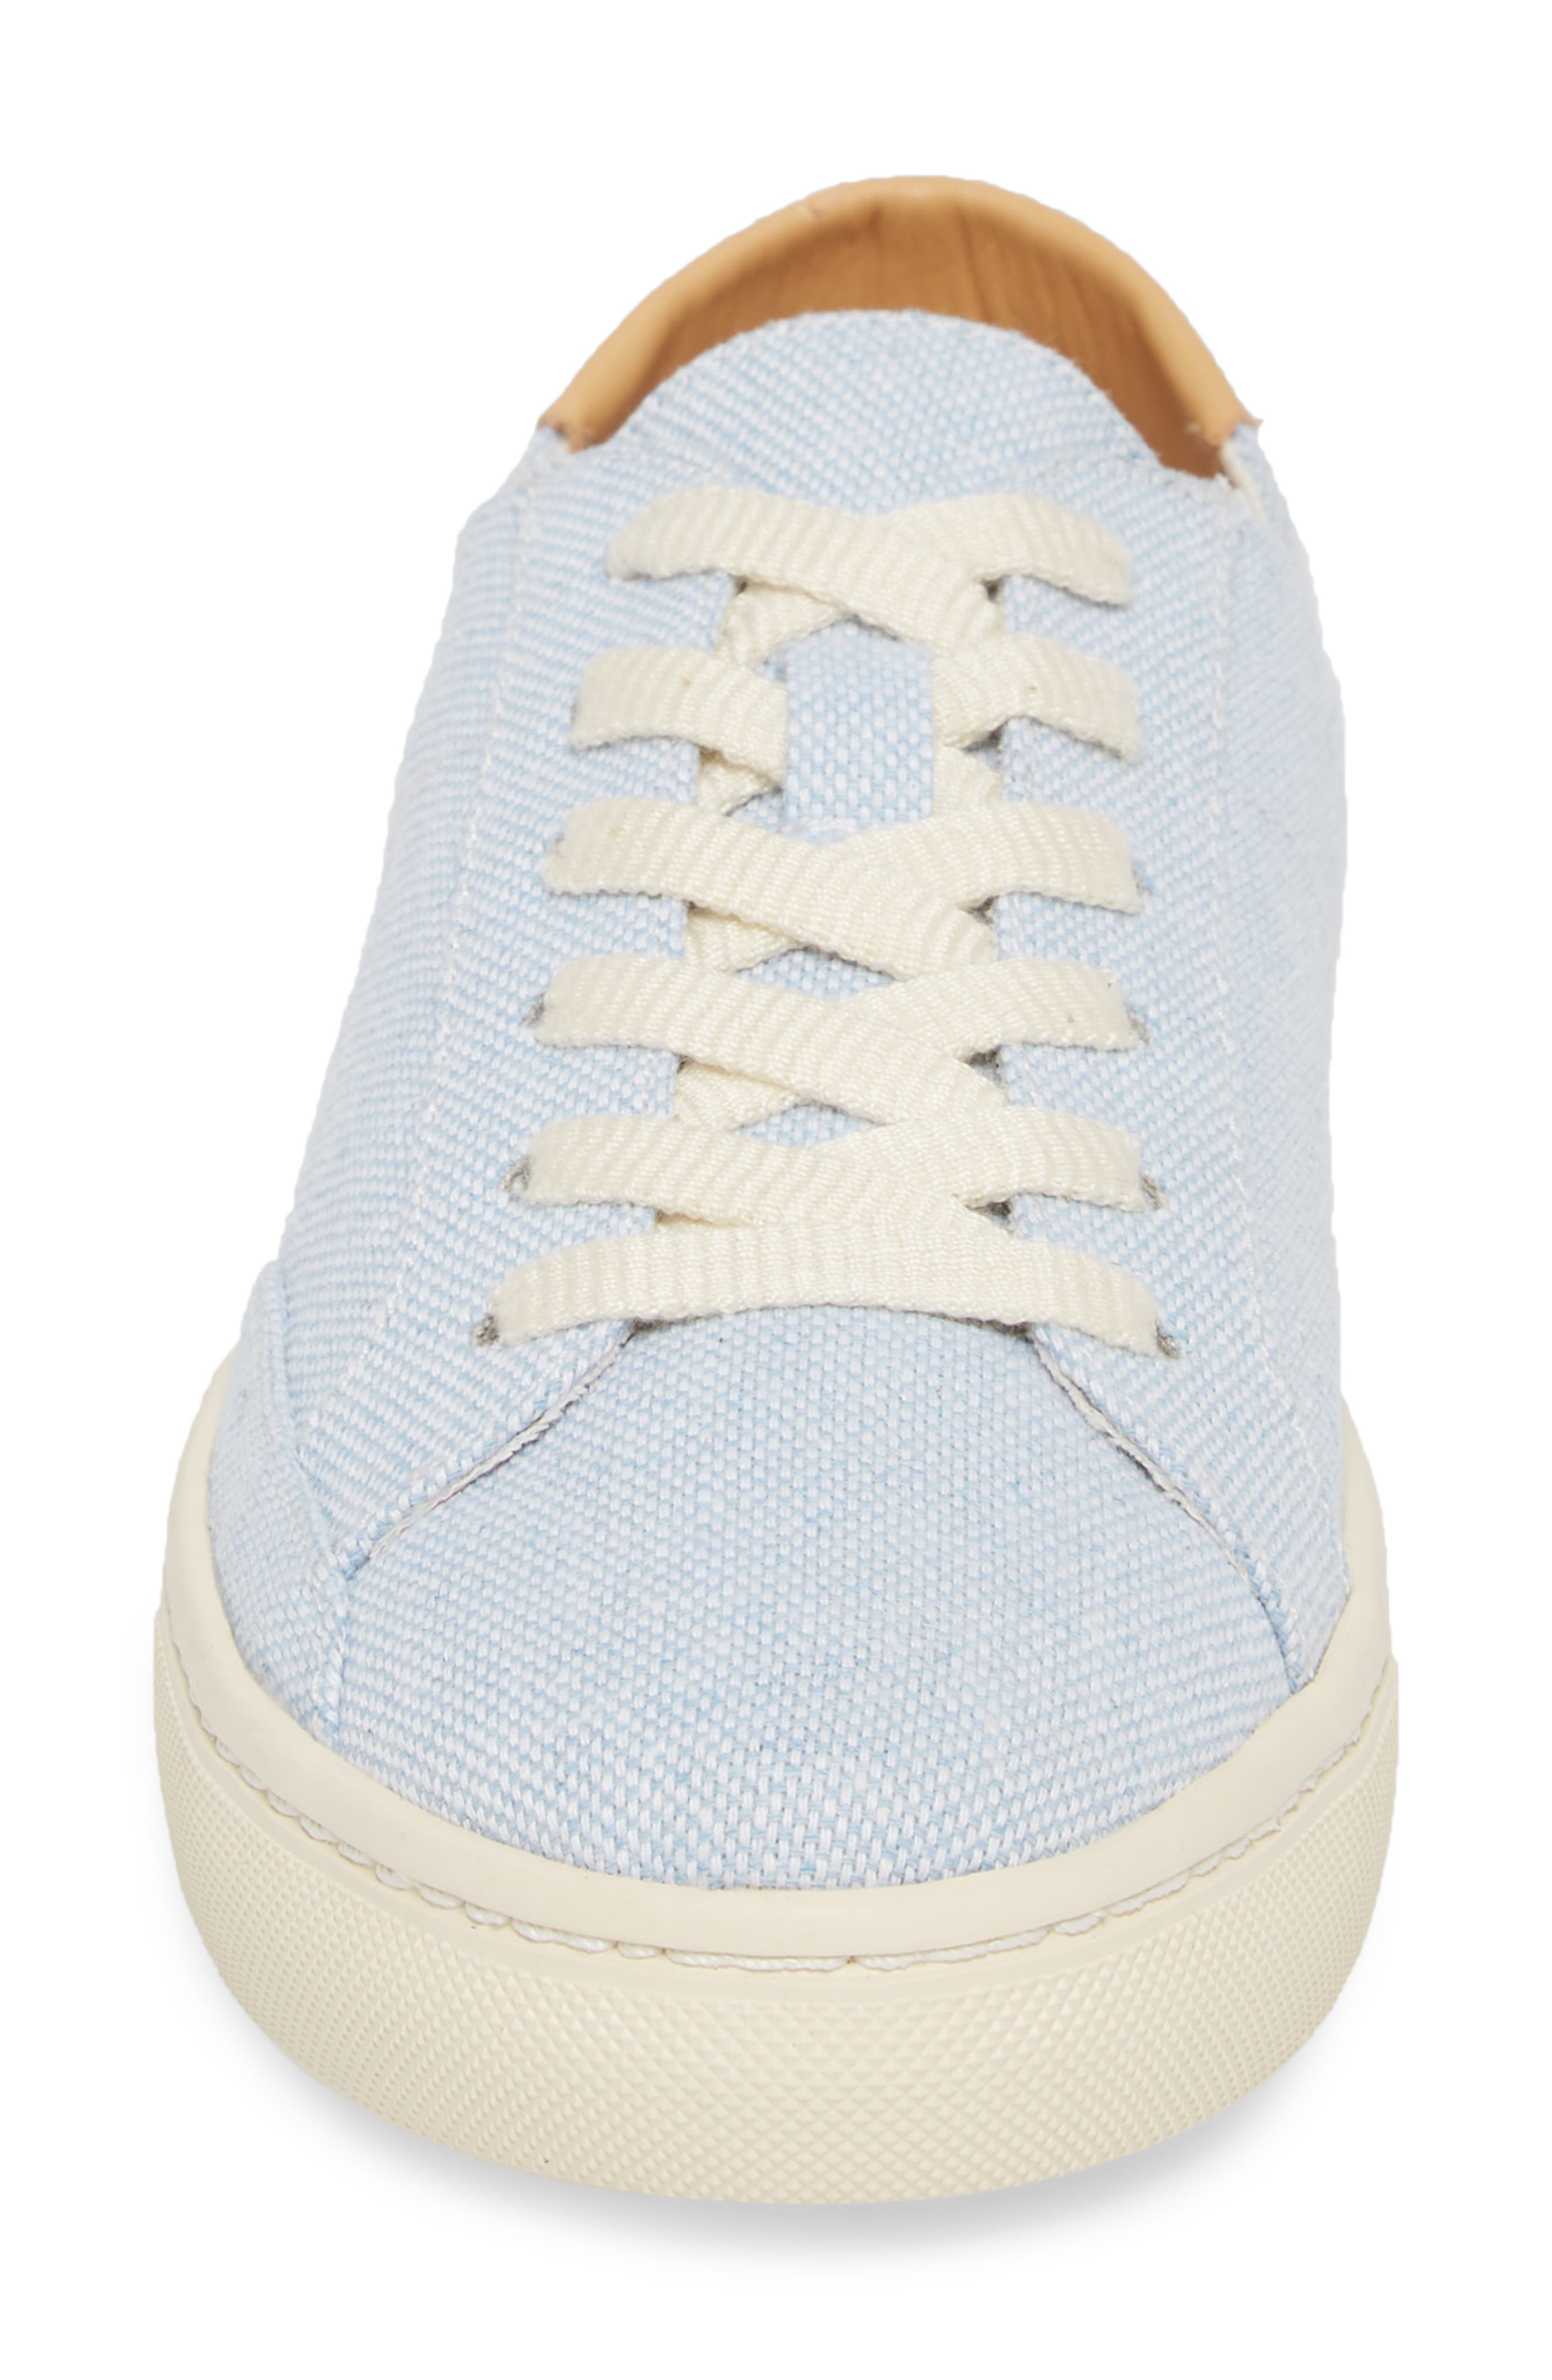 Ibiza Canvas Lace-Up Sneaker,                             Alternate thumbnail 4, color,                             SKY BLUE